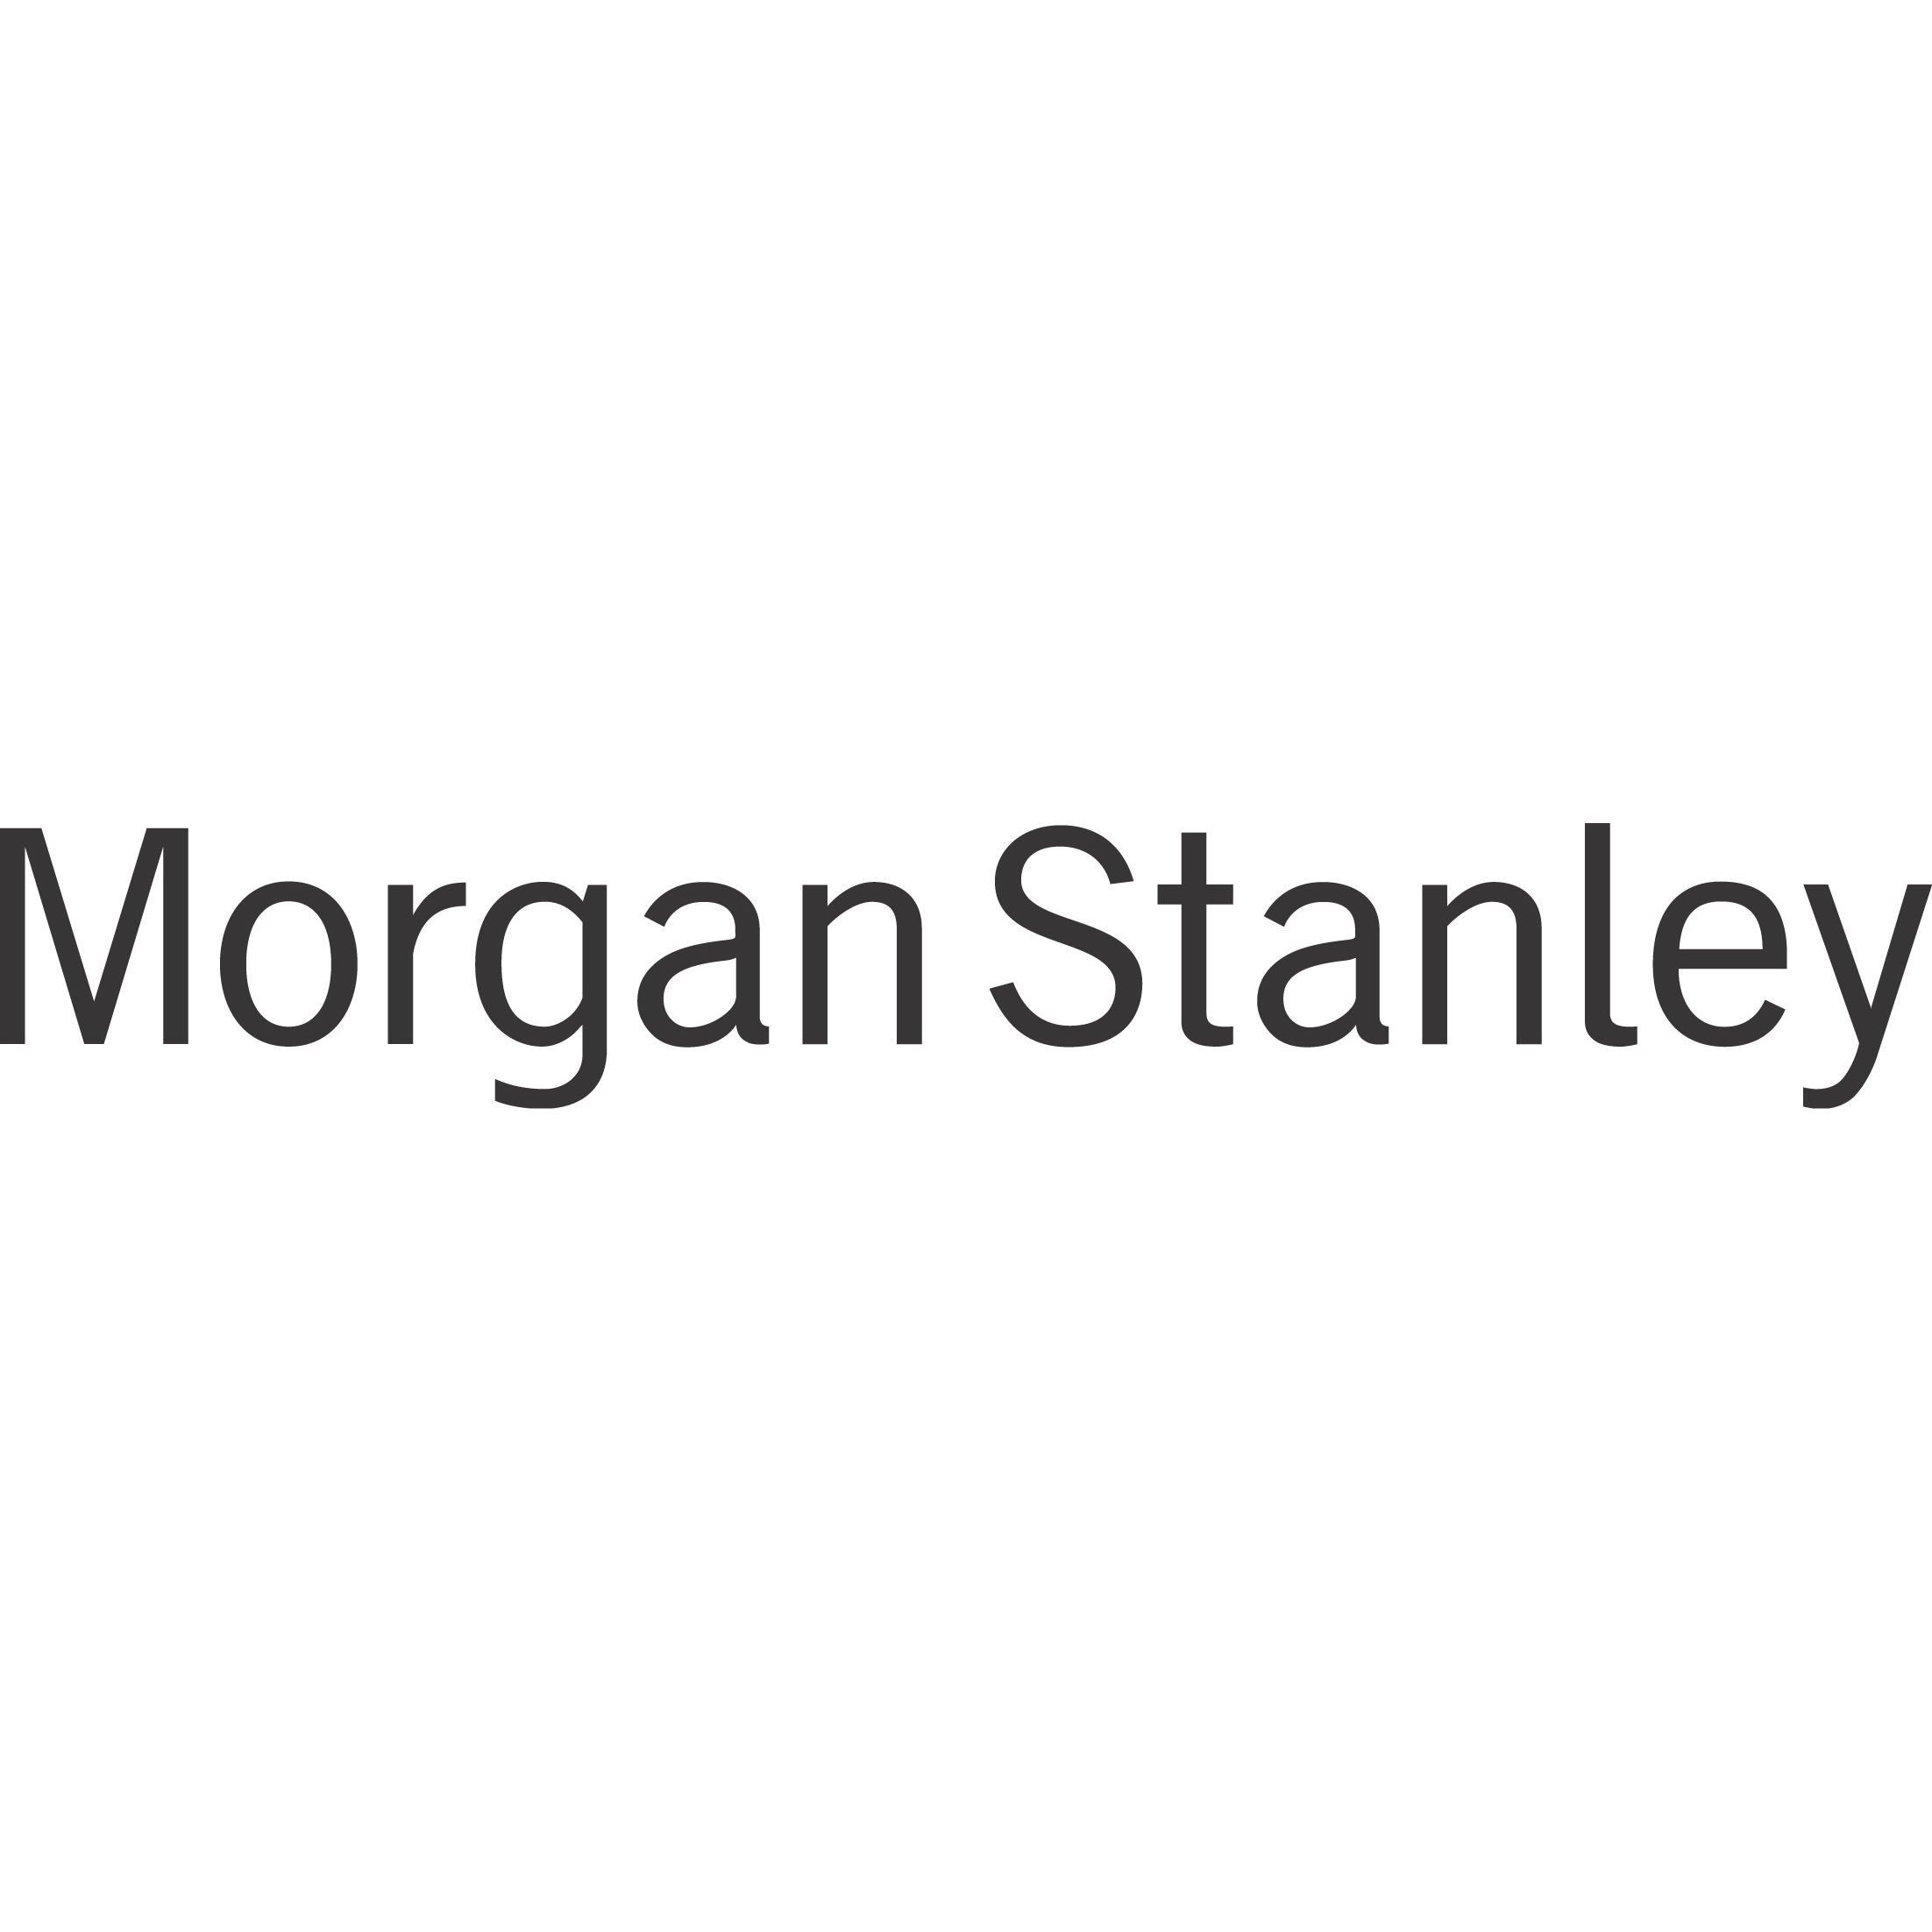 Benjamin T. Willey III - Morgan Stanley